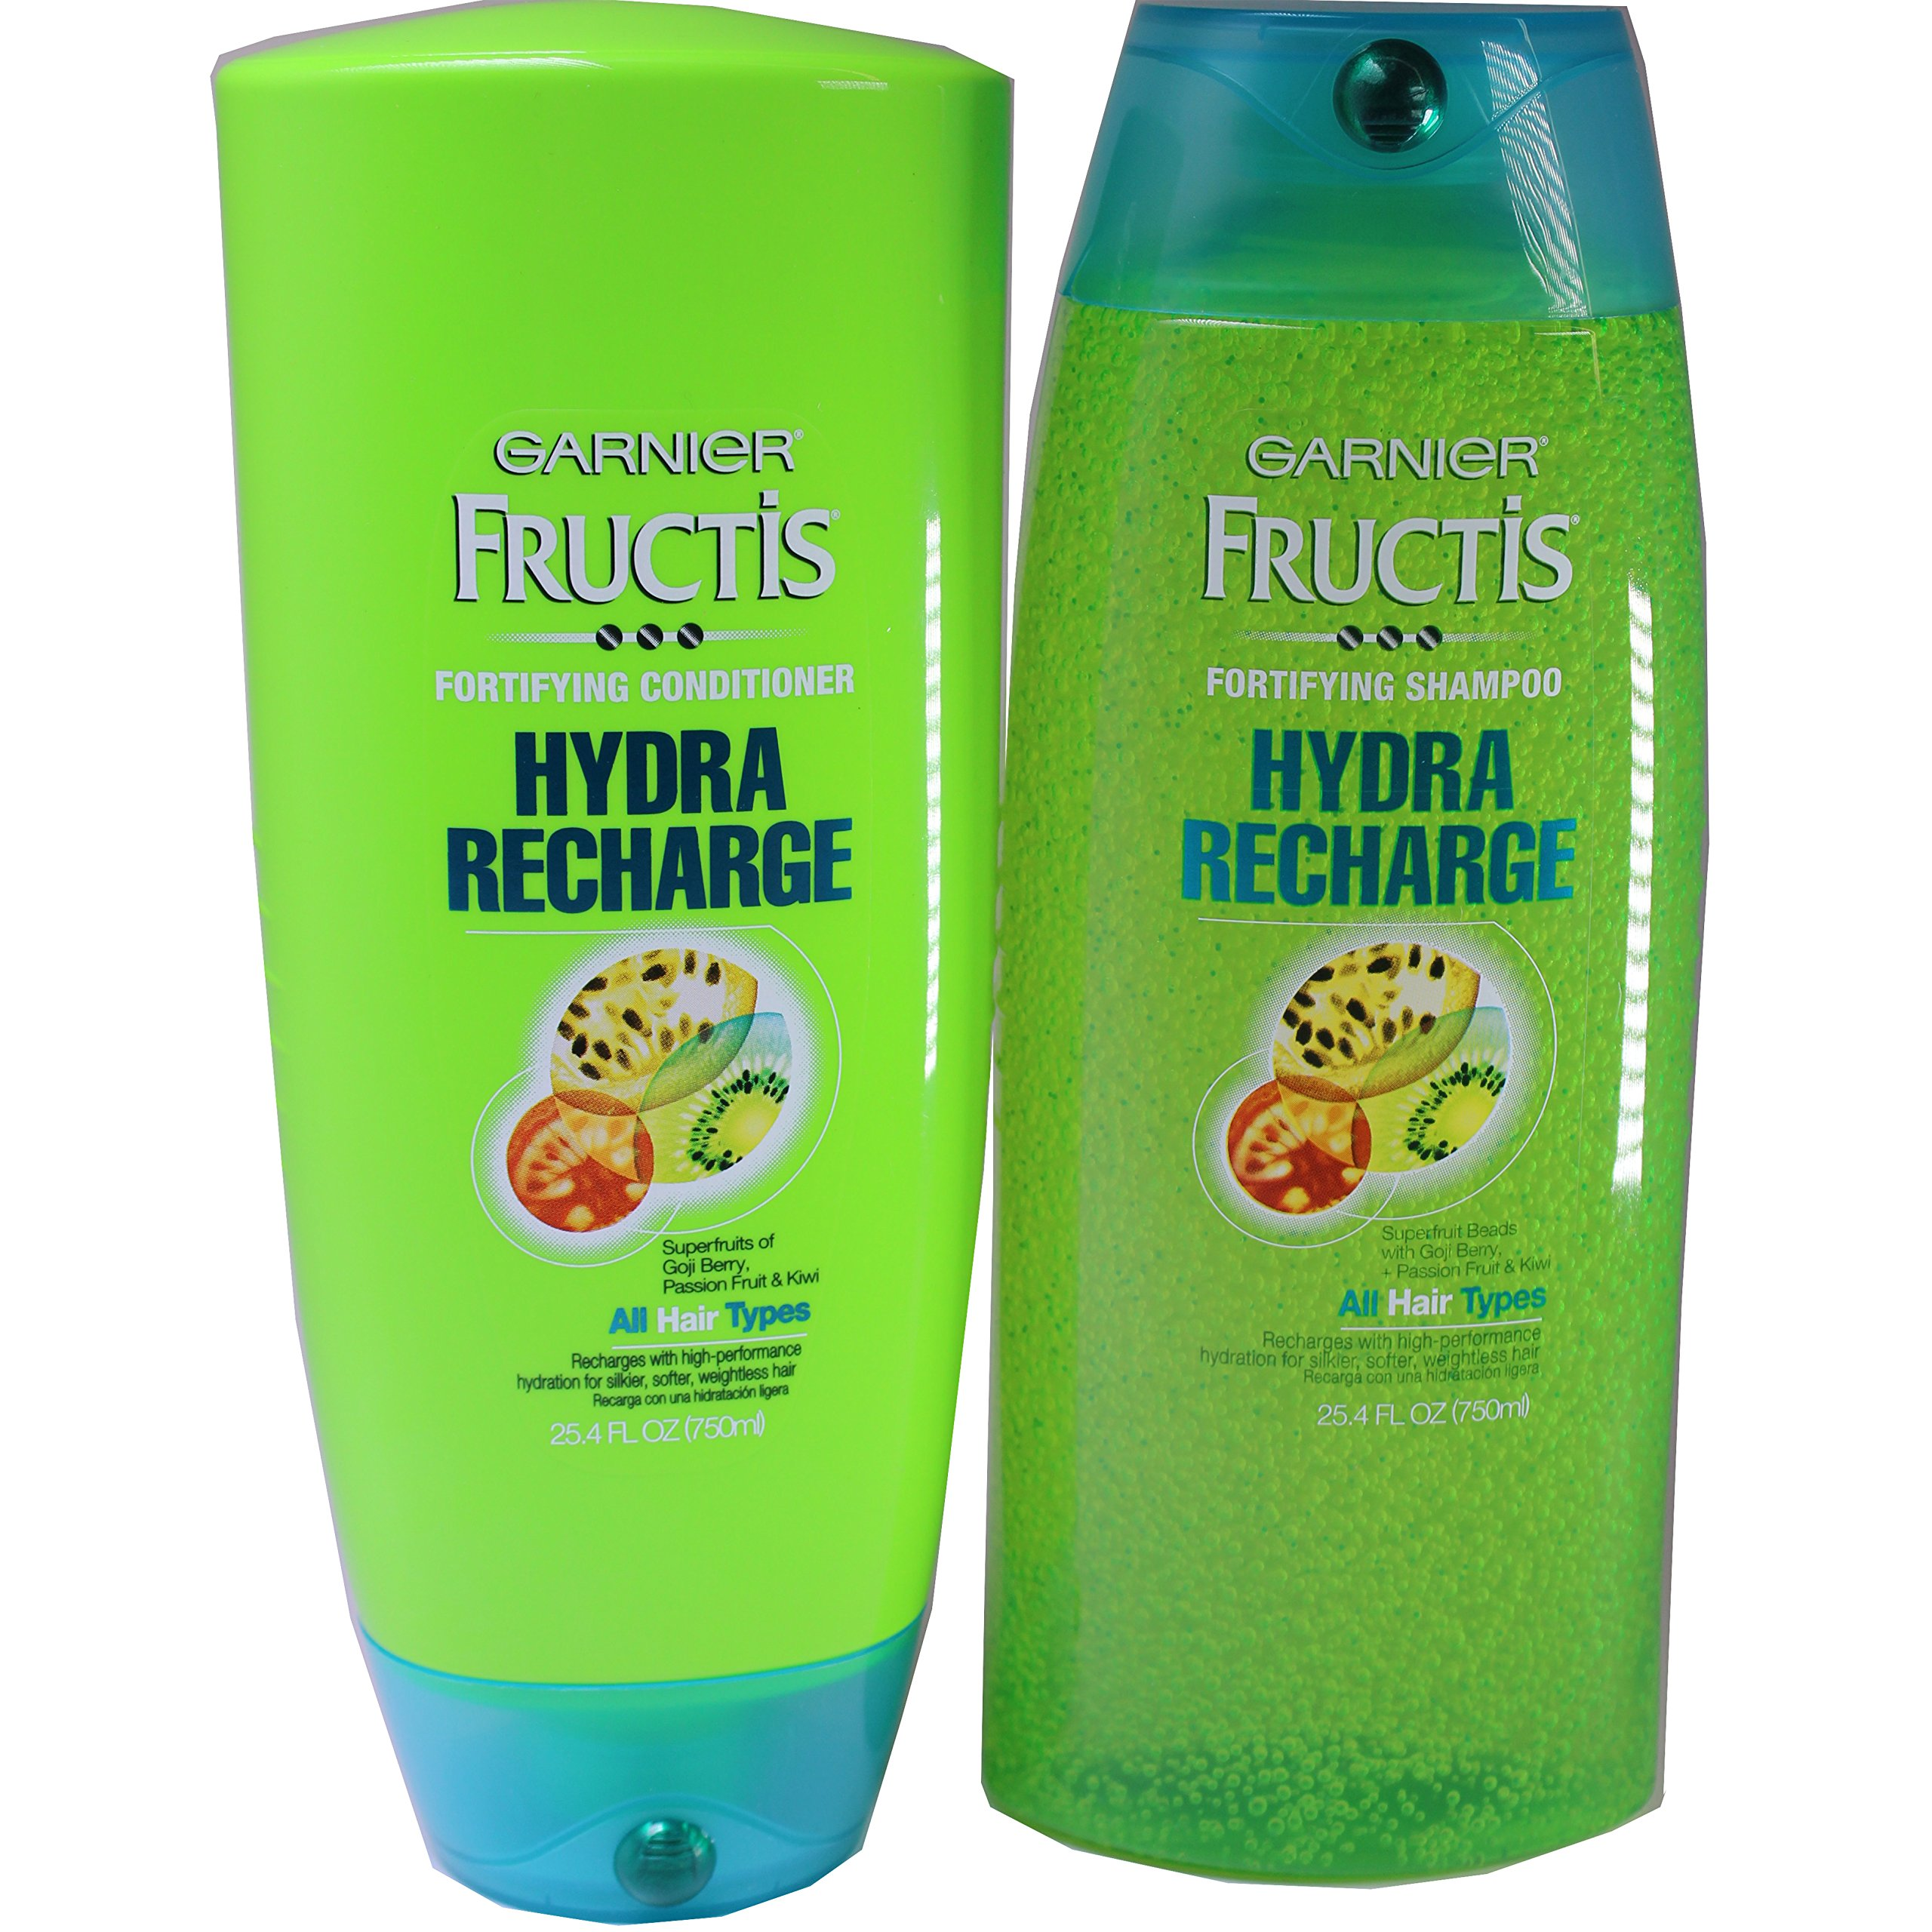 Garnier Fructis Hydra Recharge Shampoo and Conditioner Duo, For All Hair Types, 25.4 Ounce